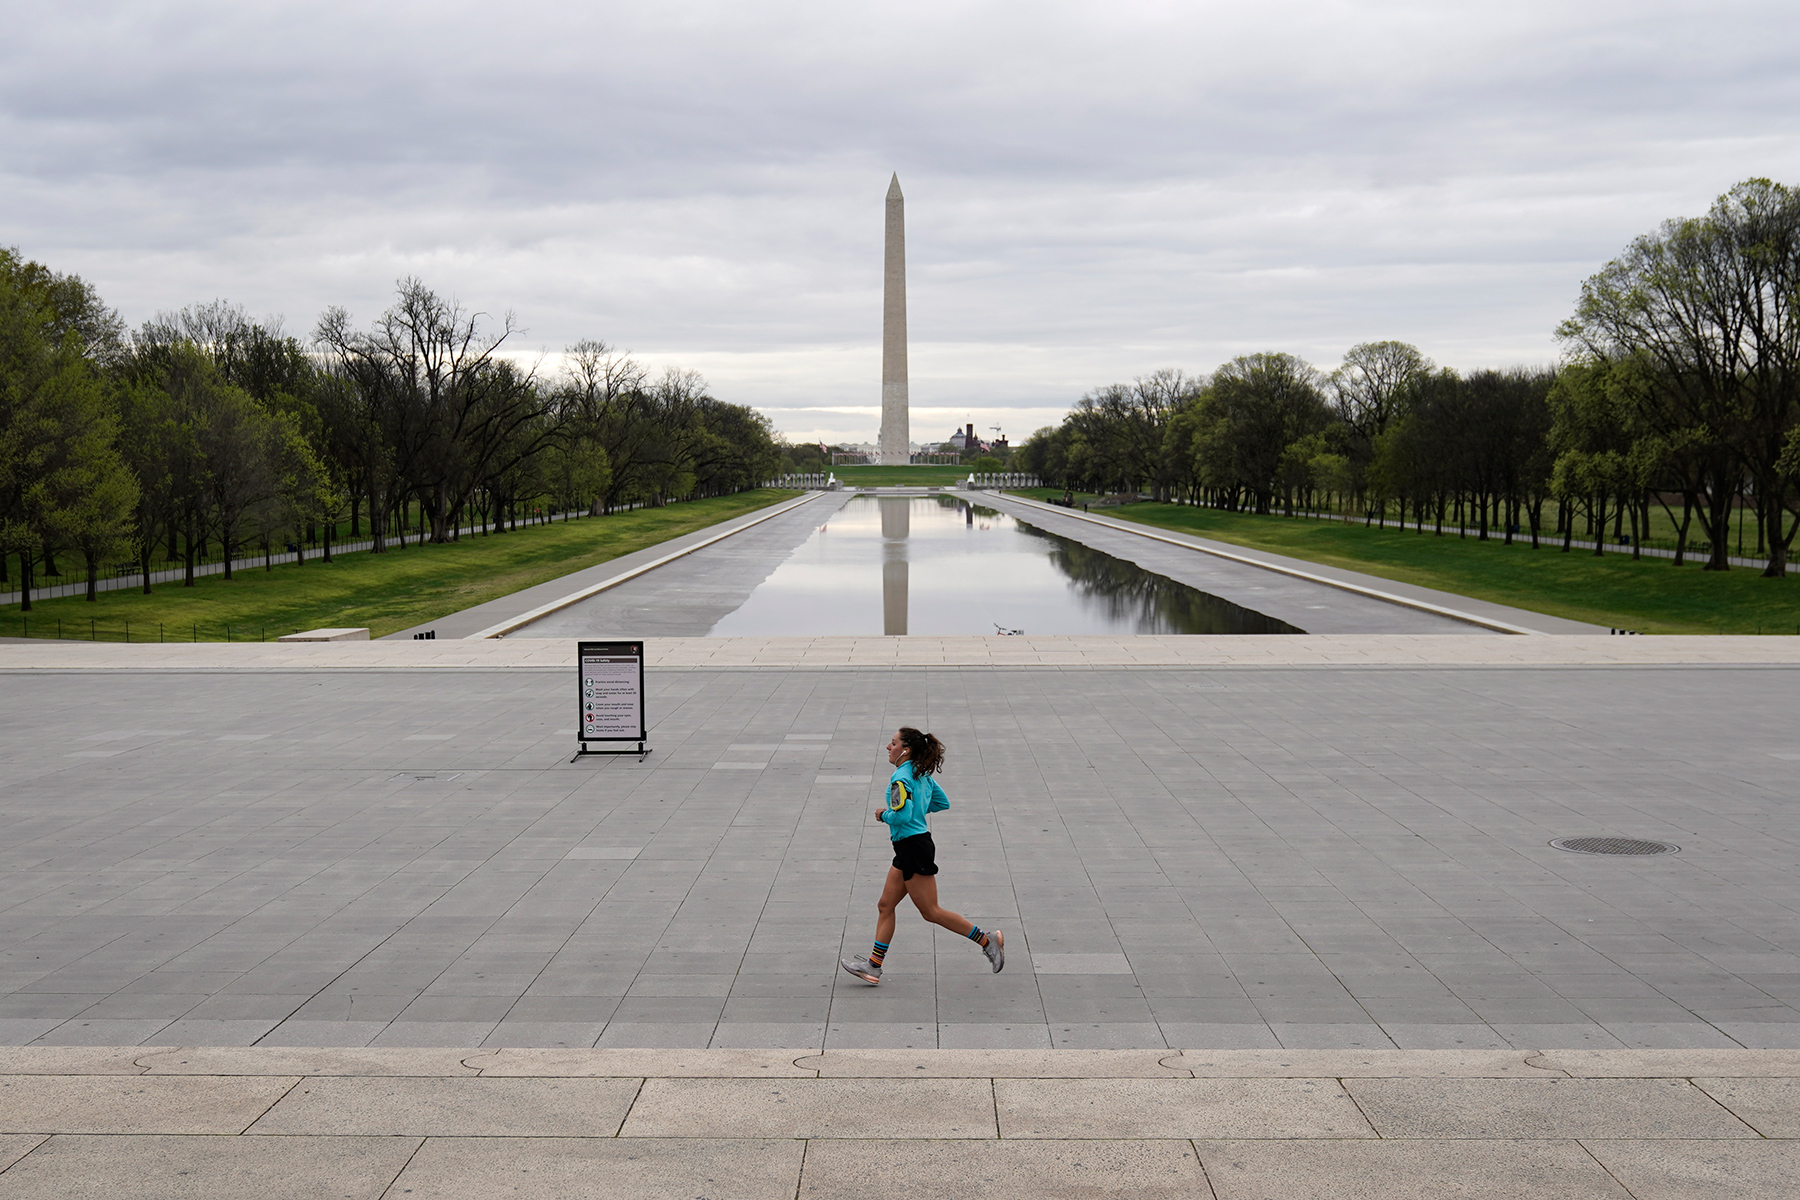 A woman jogs along a mostly empty National Mall during covid stay-at-home order in Washington, DC.